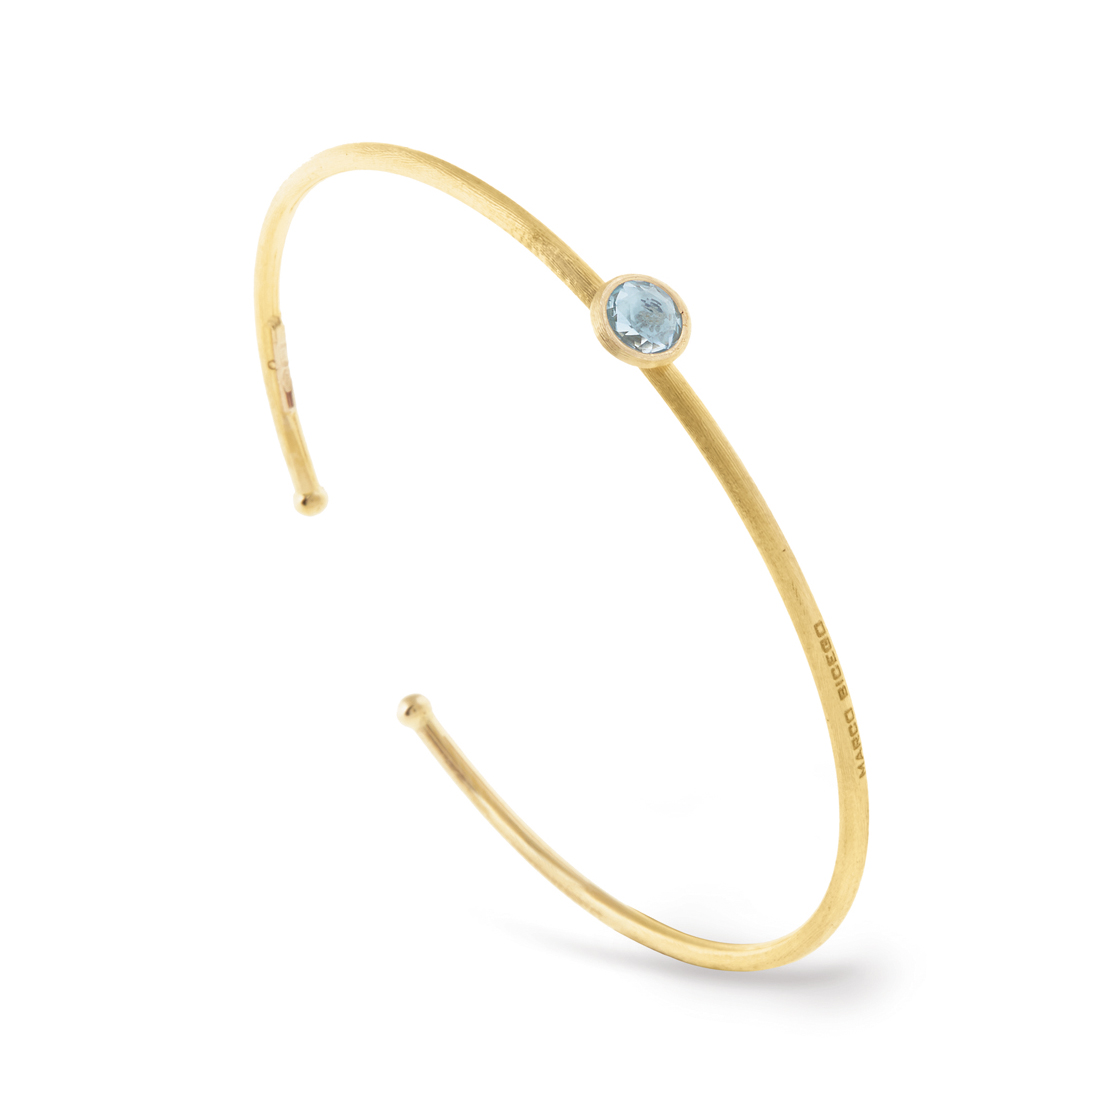 Marco Bicego Jaipur Aquamarine Bangle